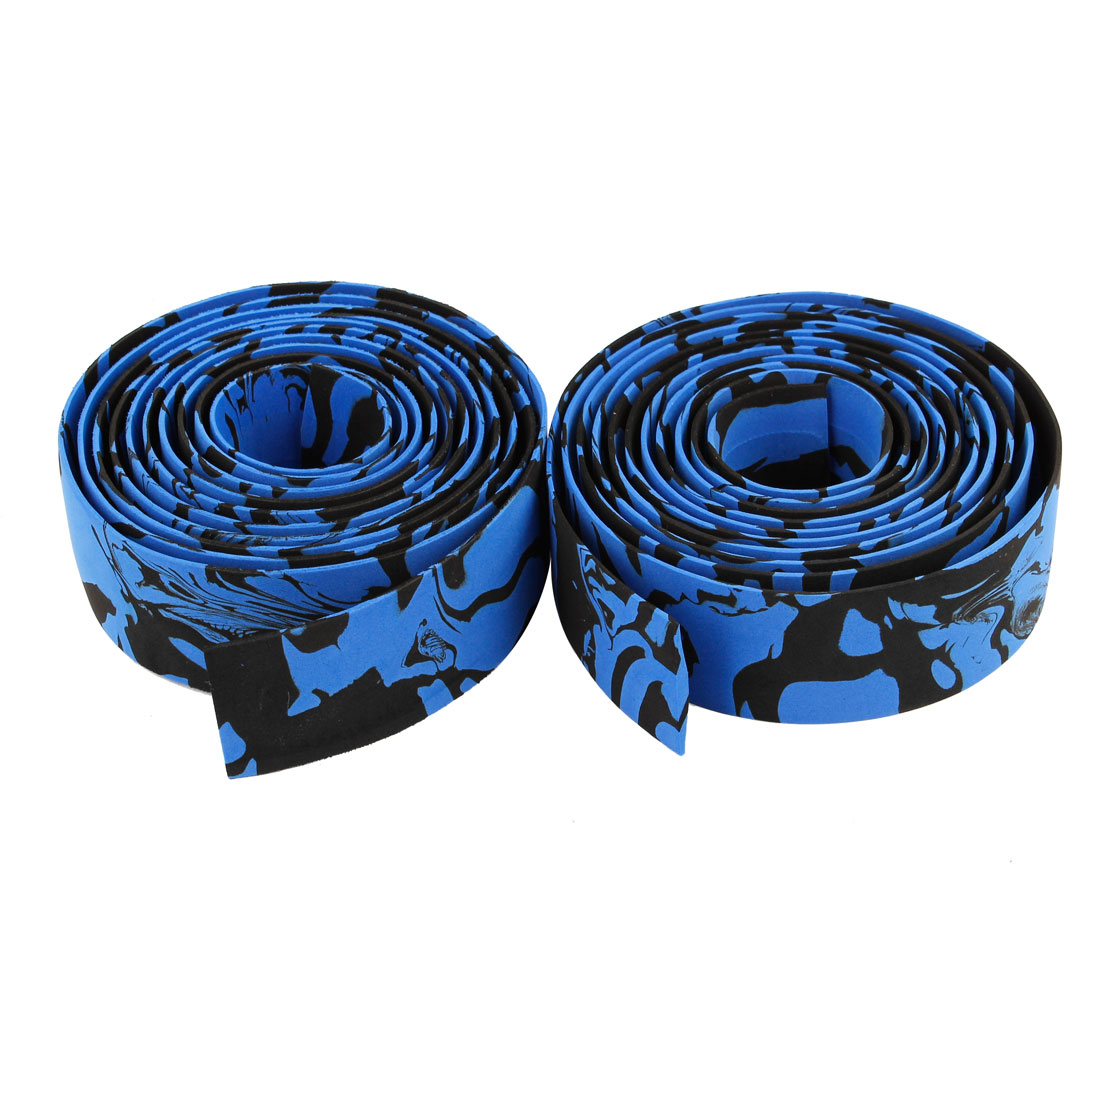 Pair Blue Black Sponge 6.8ft Long 3cm Wide Bike Handlebar Tape Wrapper w Bar End Plug